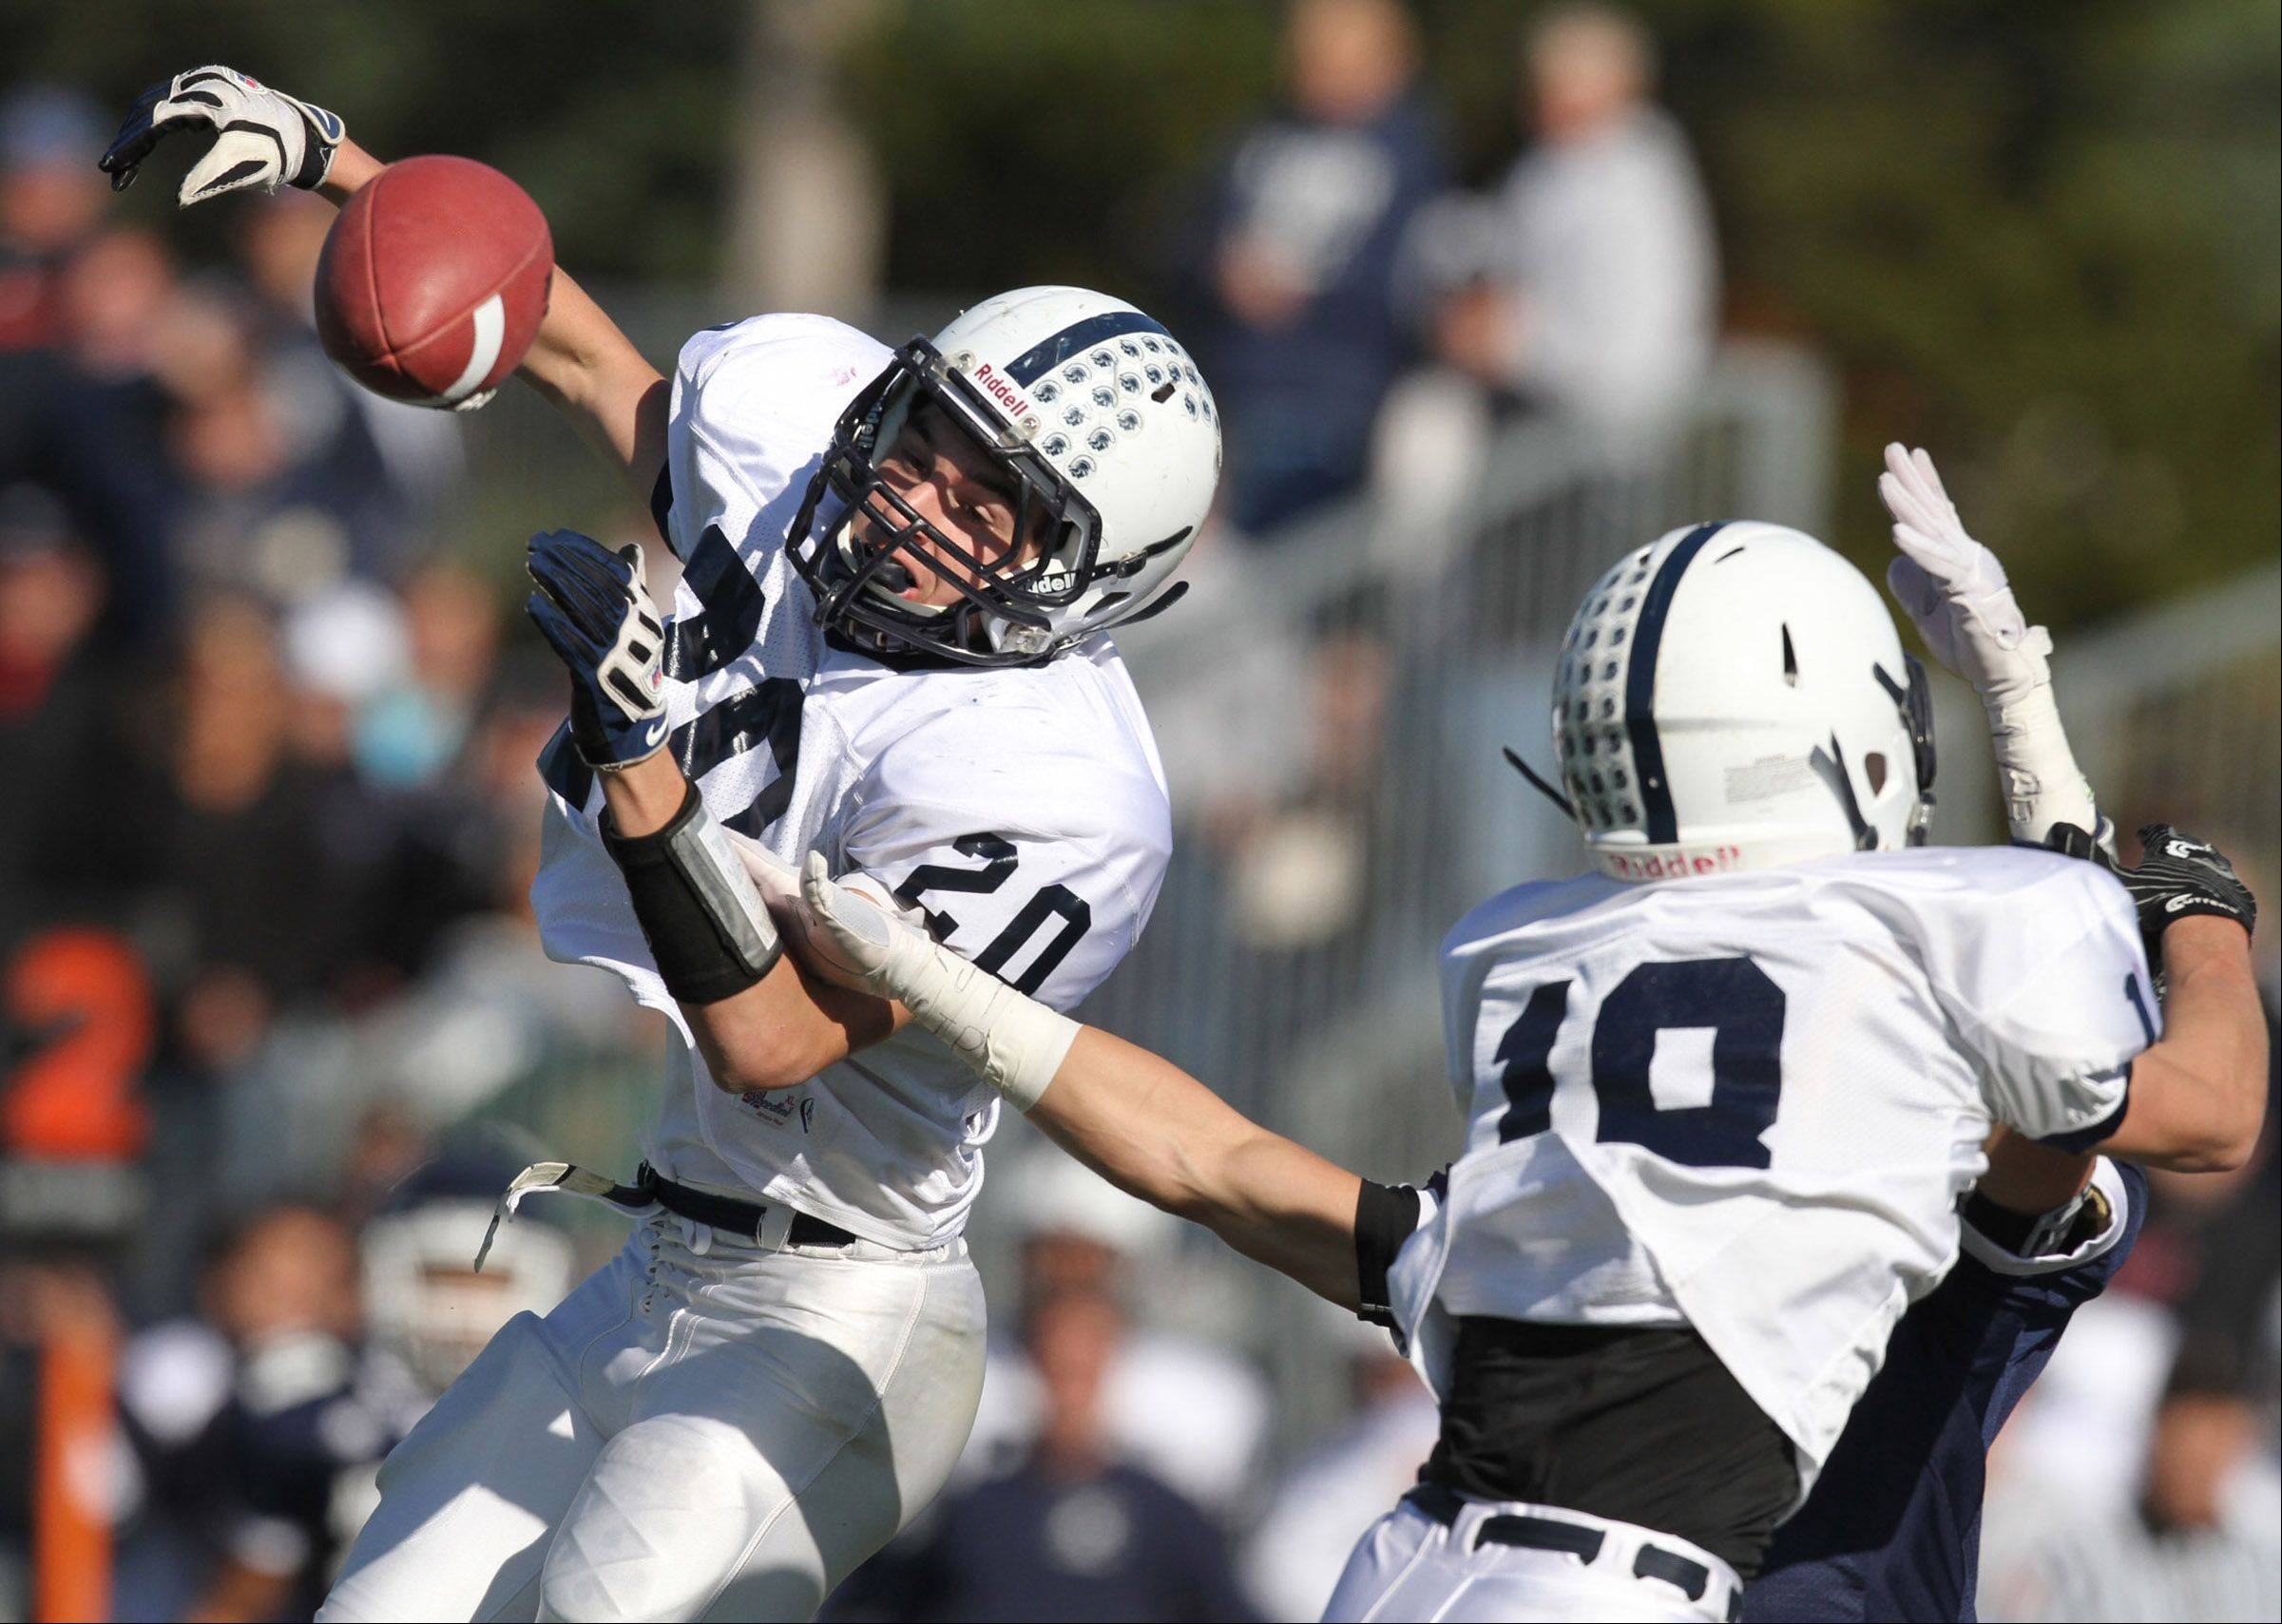 Cary-Grove defensive-back Sean Keadyjust missed intercepting this pass by Nazareth Academy quarterback on Saturday.